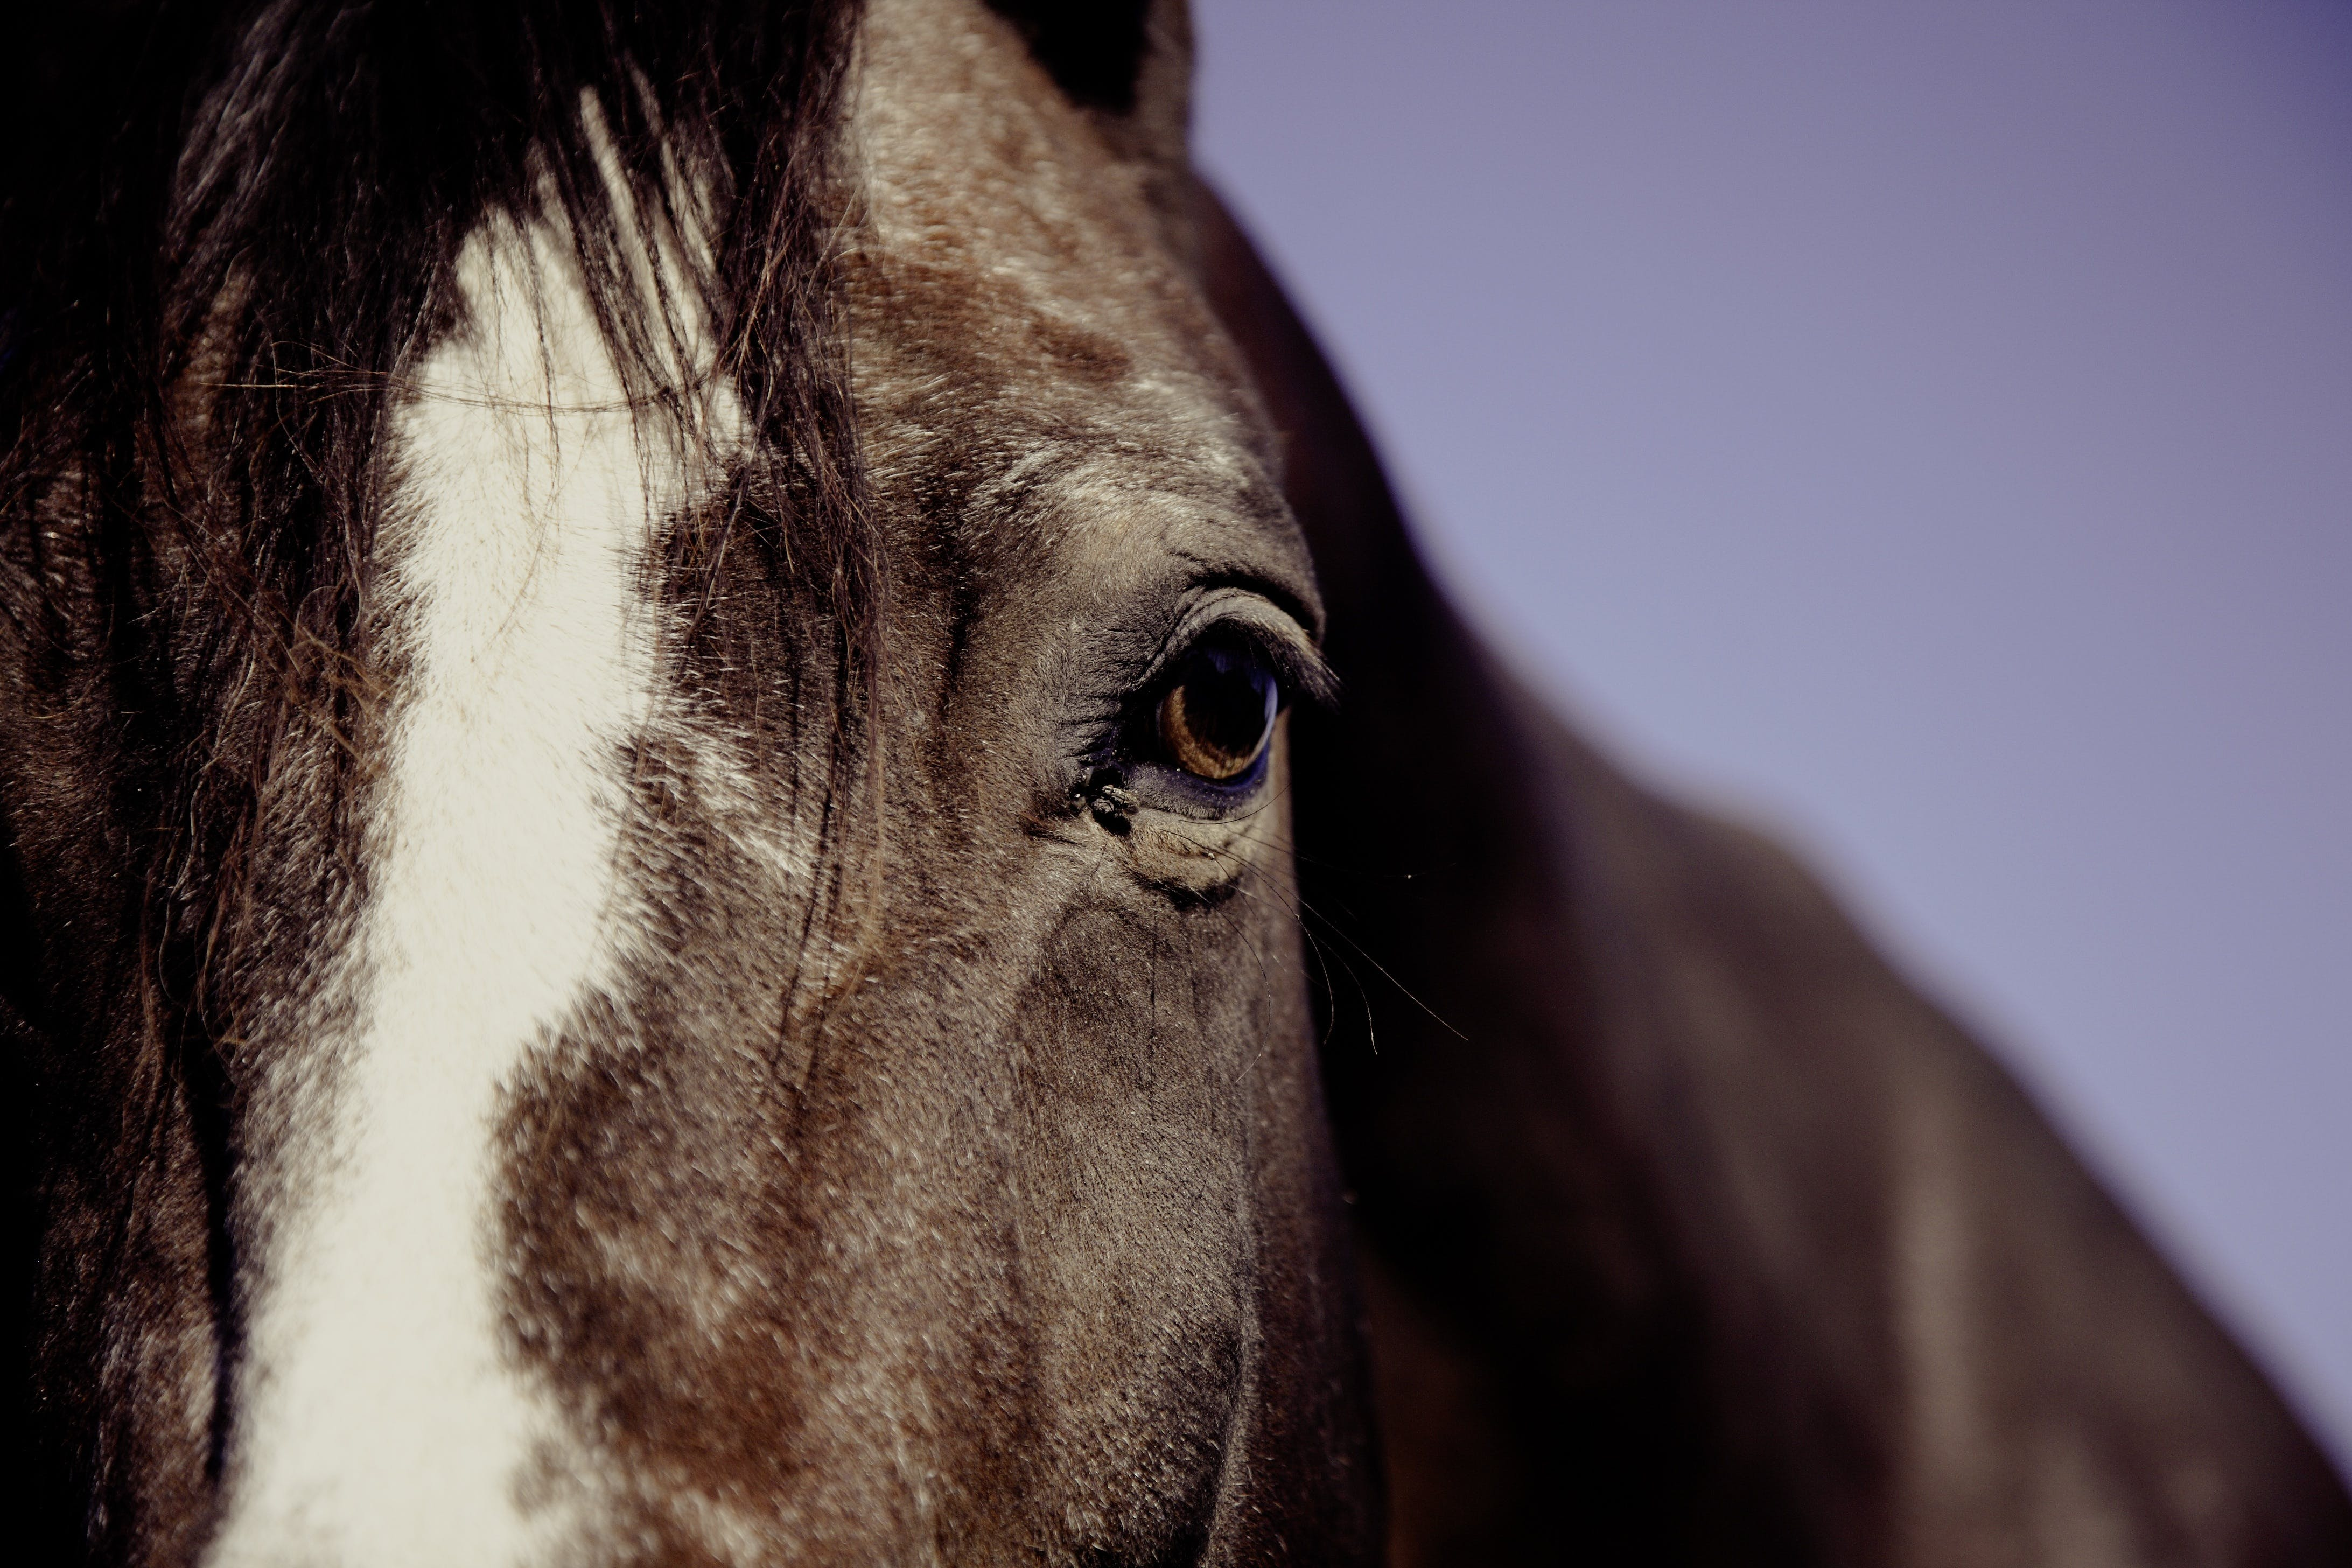 Horse Face in Focus Phography